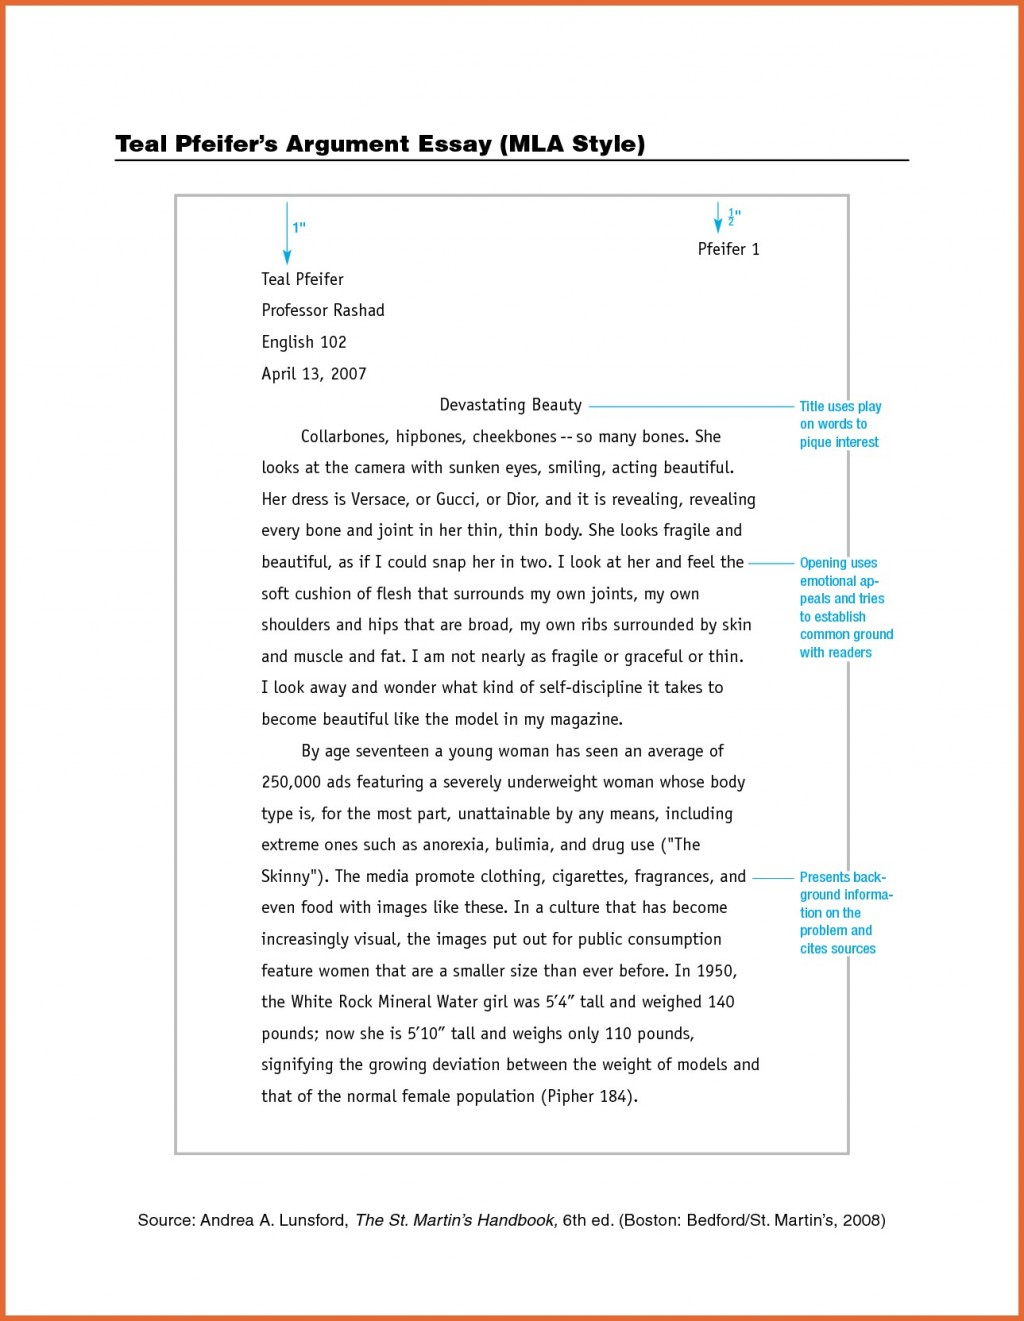 018 Mla Format Essay Title Page Fresh Of An Goal How To Your Paper In Goodwi My Style With Word Narrative Stirring Template Outline Persuasive Parenthetical Citations No Number Large